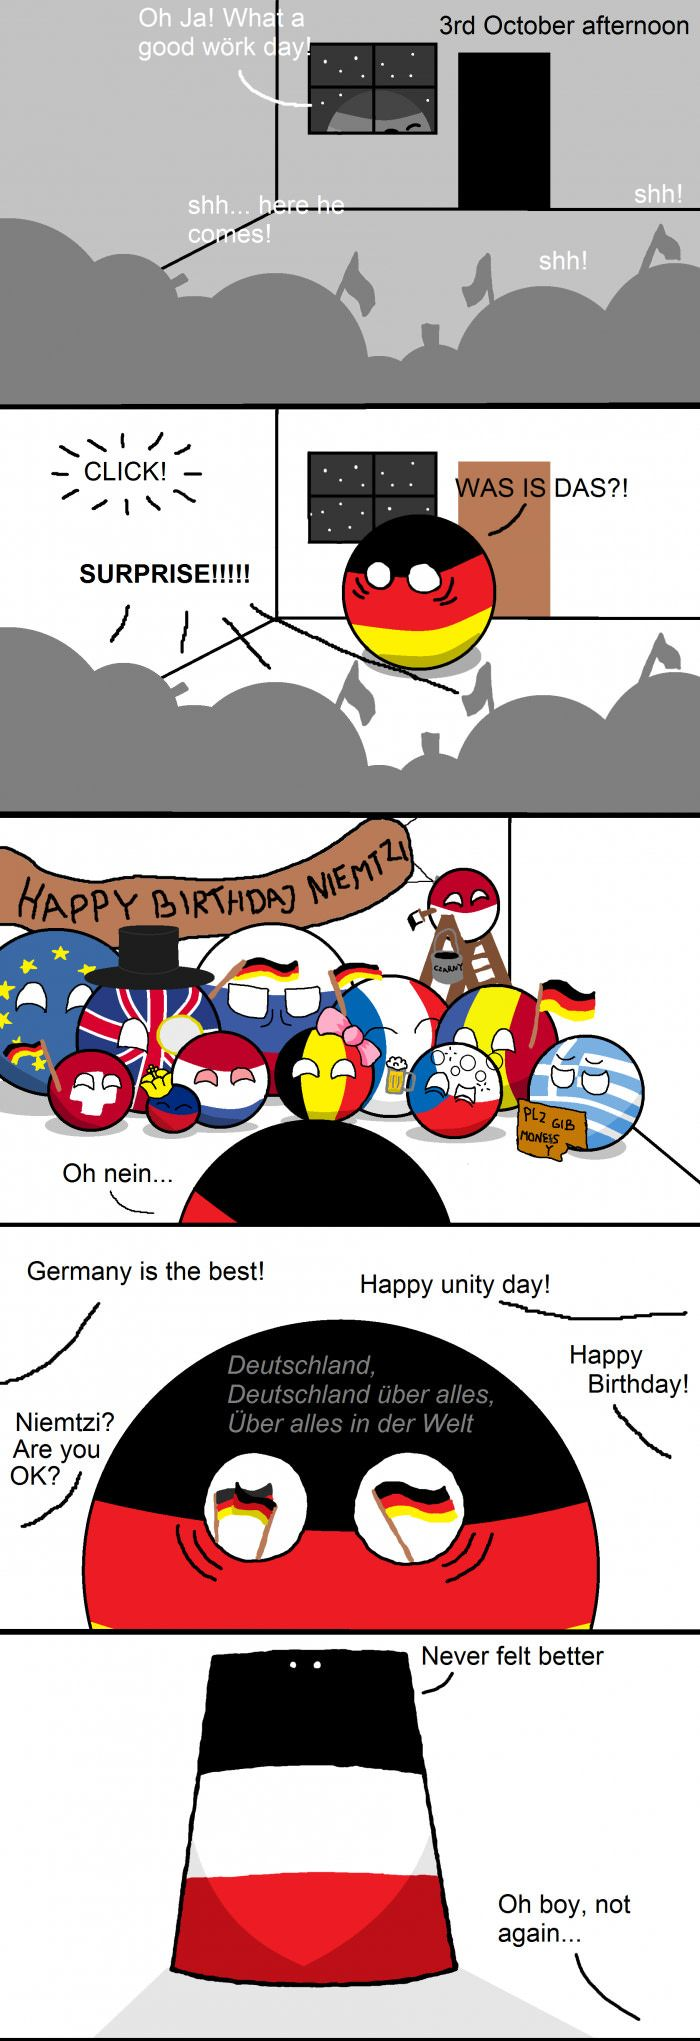 It's not the 3rt October, but it's still funny :D<<<HAHAHHAHAHA ONE OF THE COUNTRIES WERE DOING CRACK